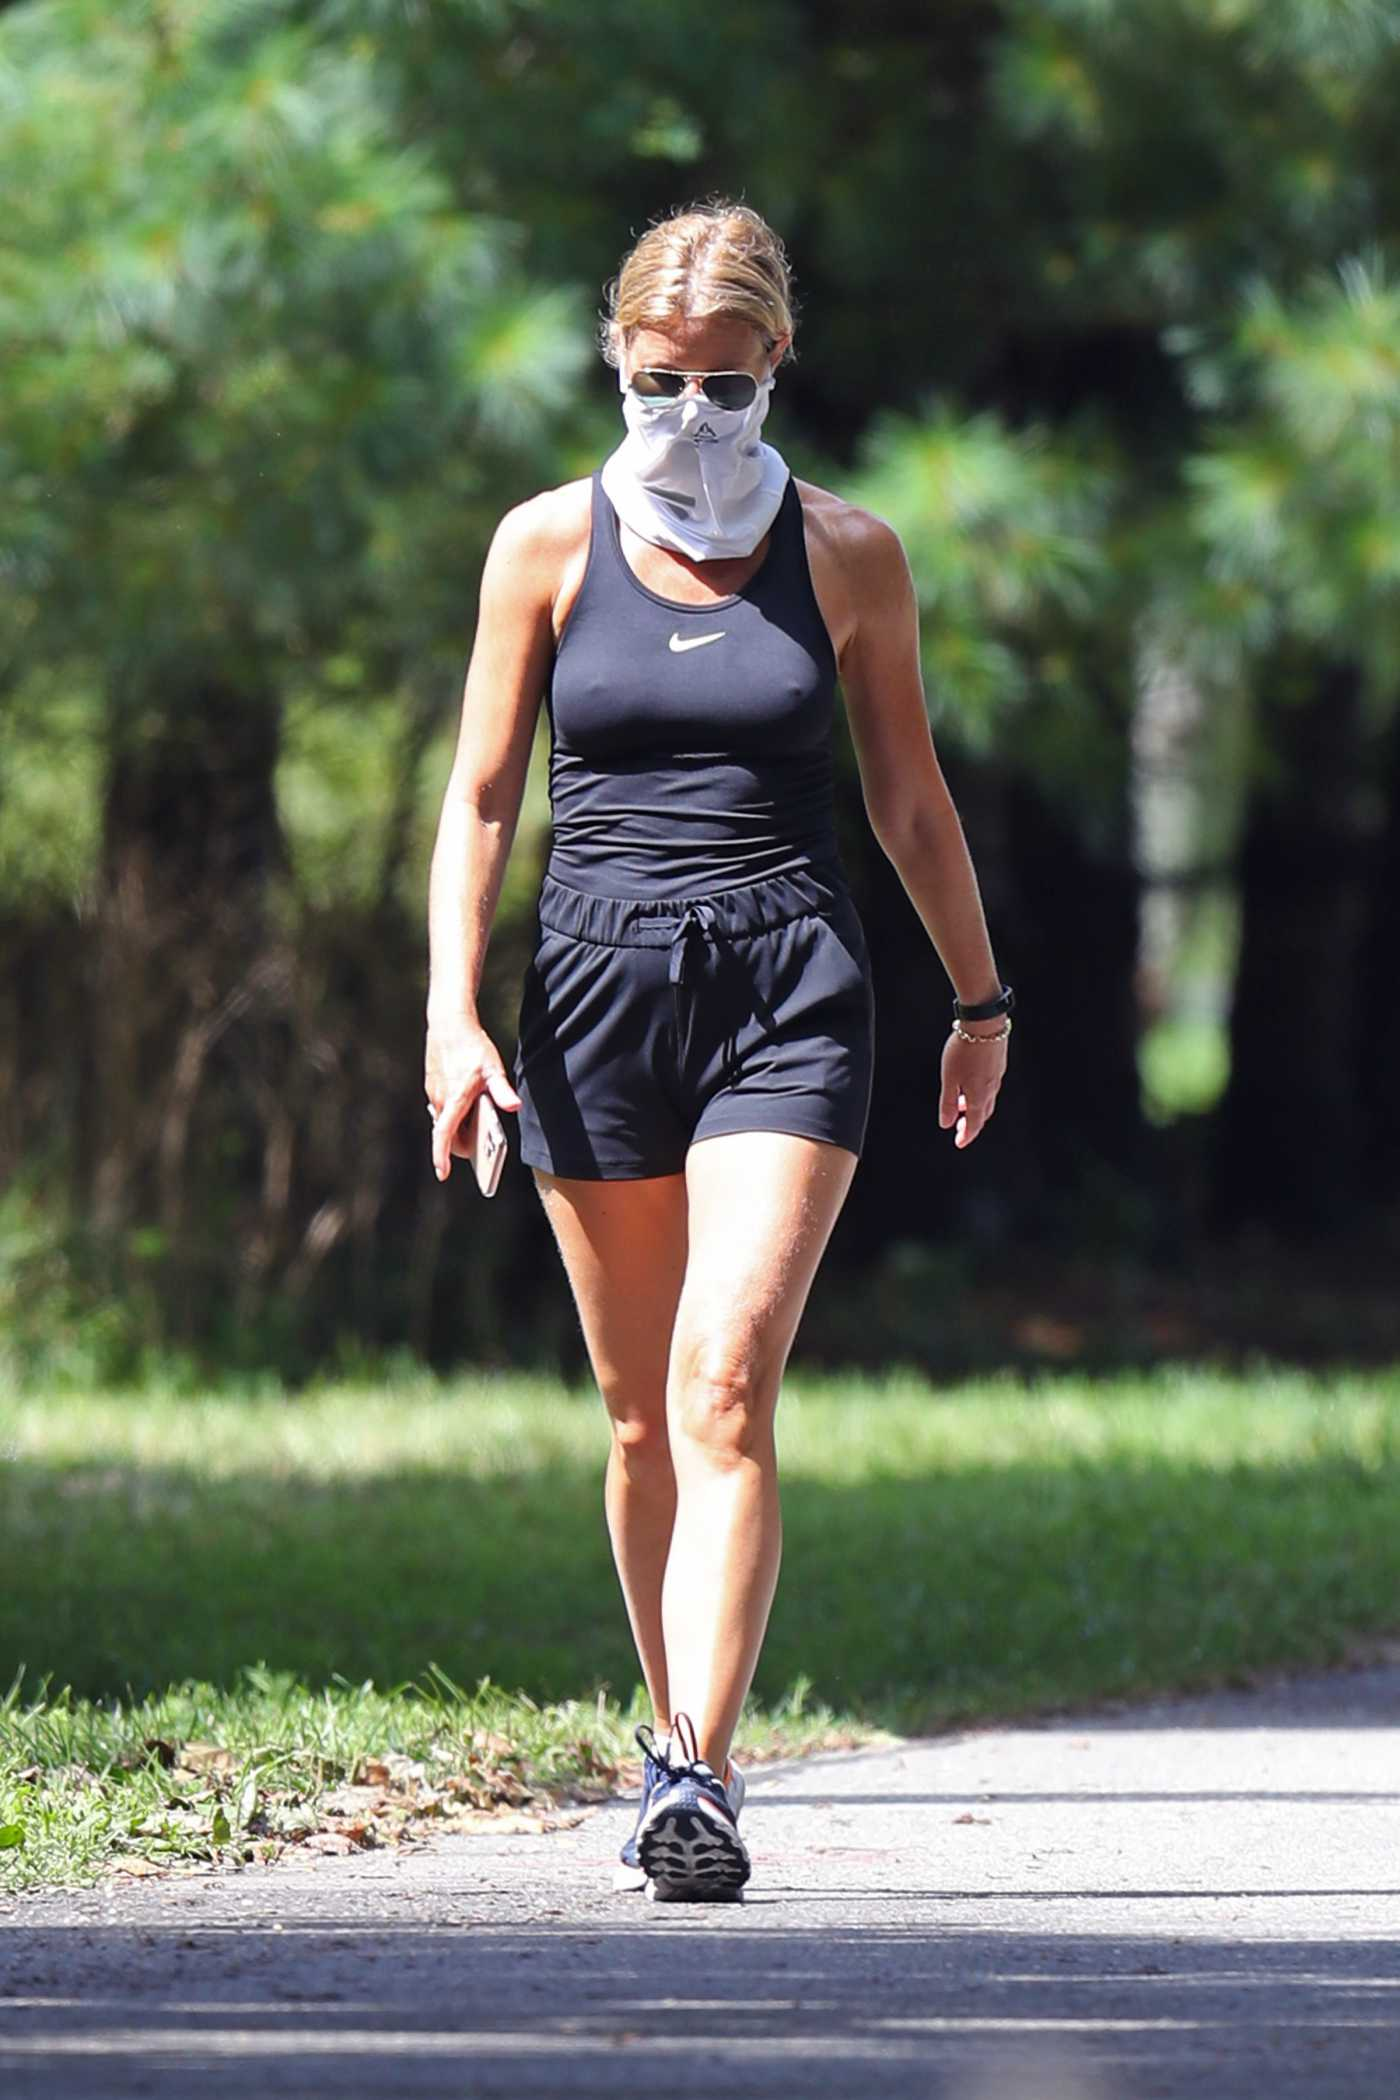 Gwyneth Paltrow in a Black Tank Top Out for a Walk in the Hamptons, NYC 08/20/2020